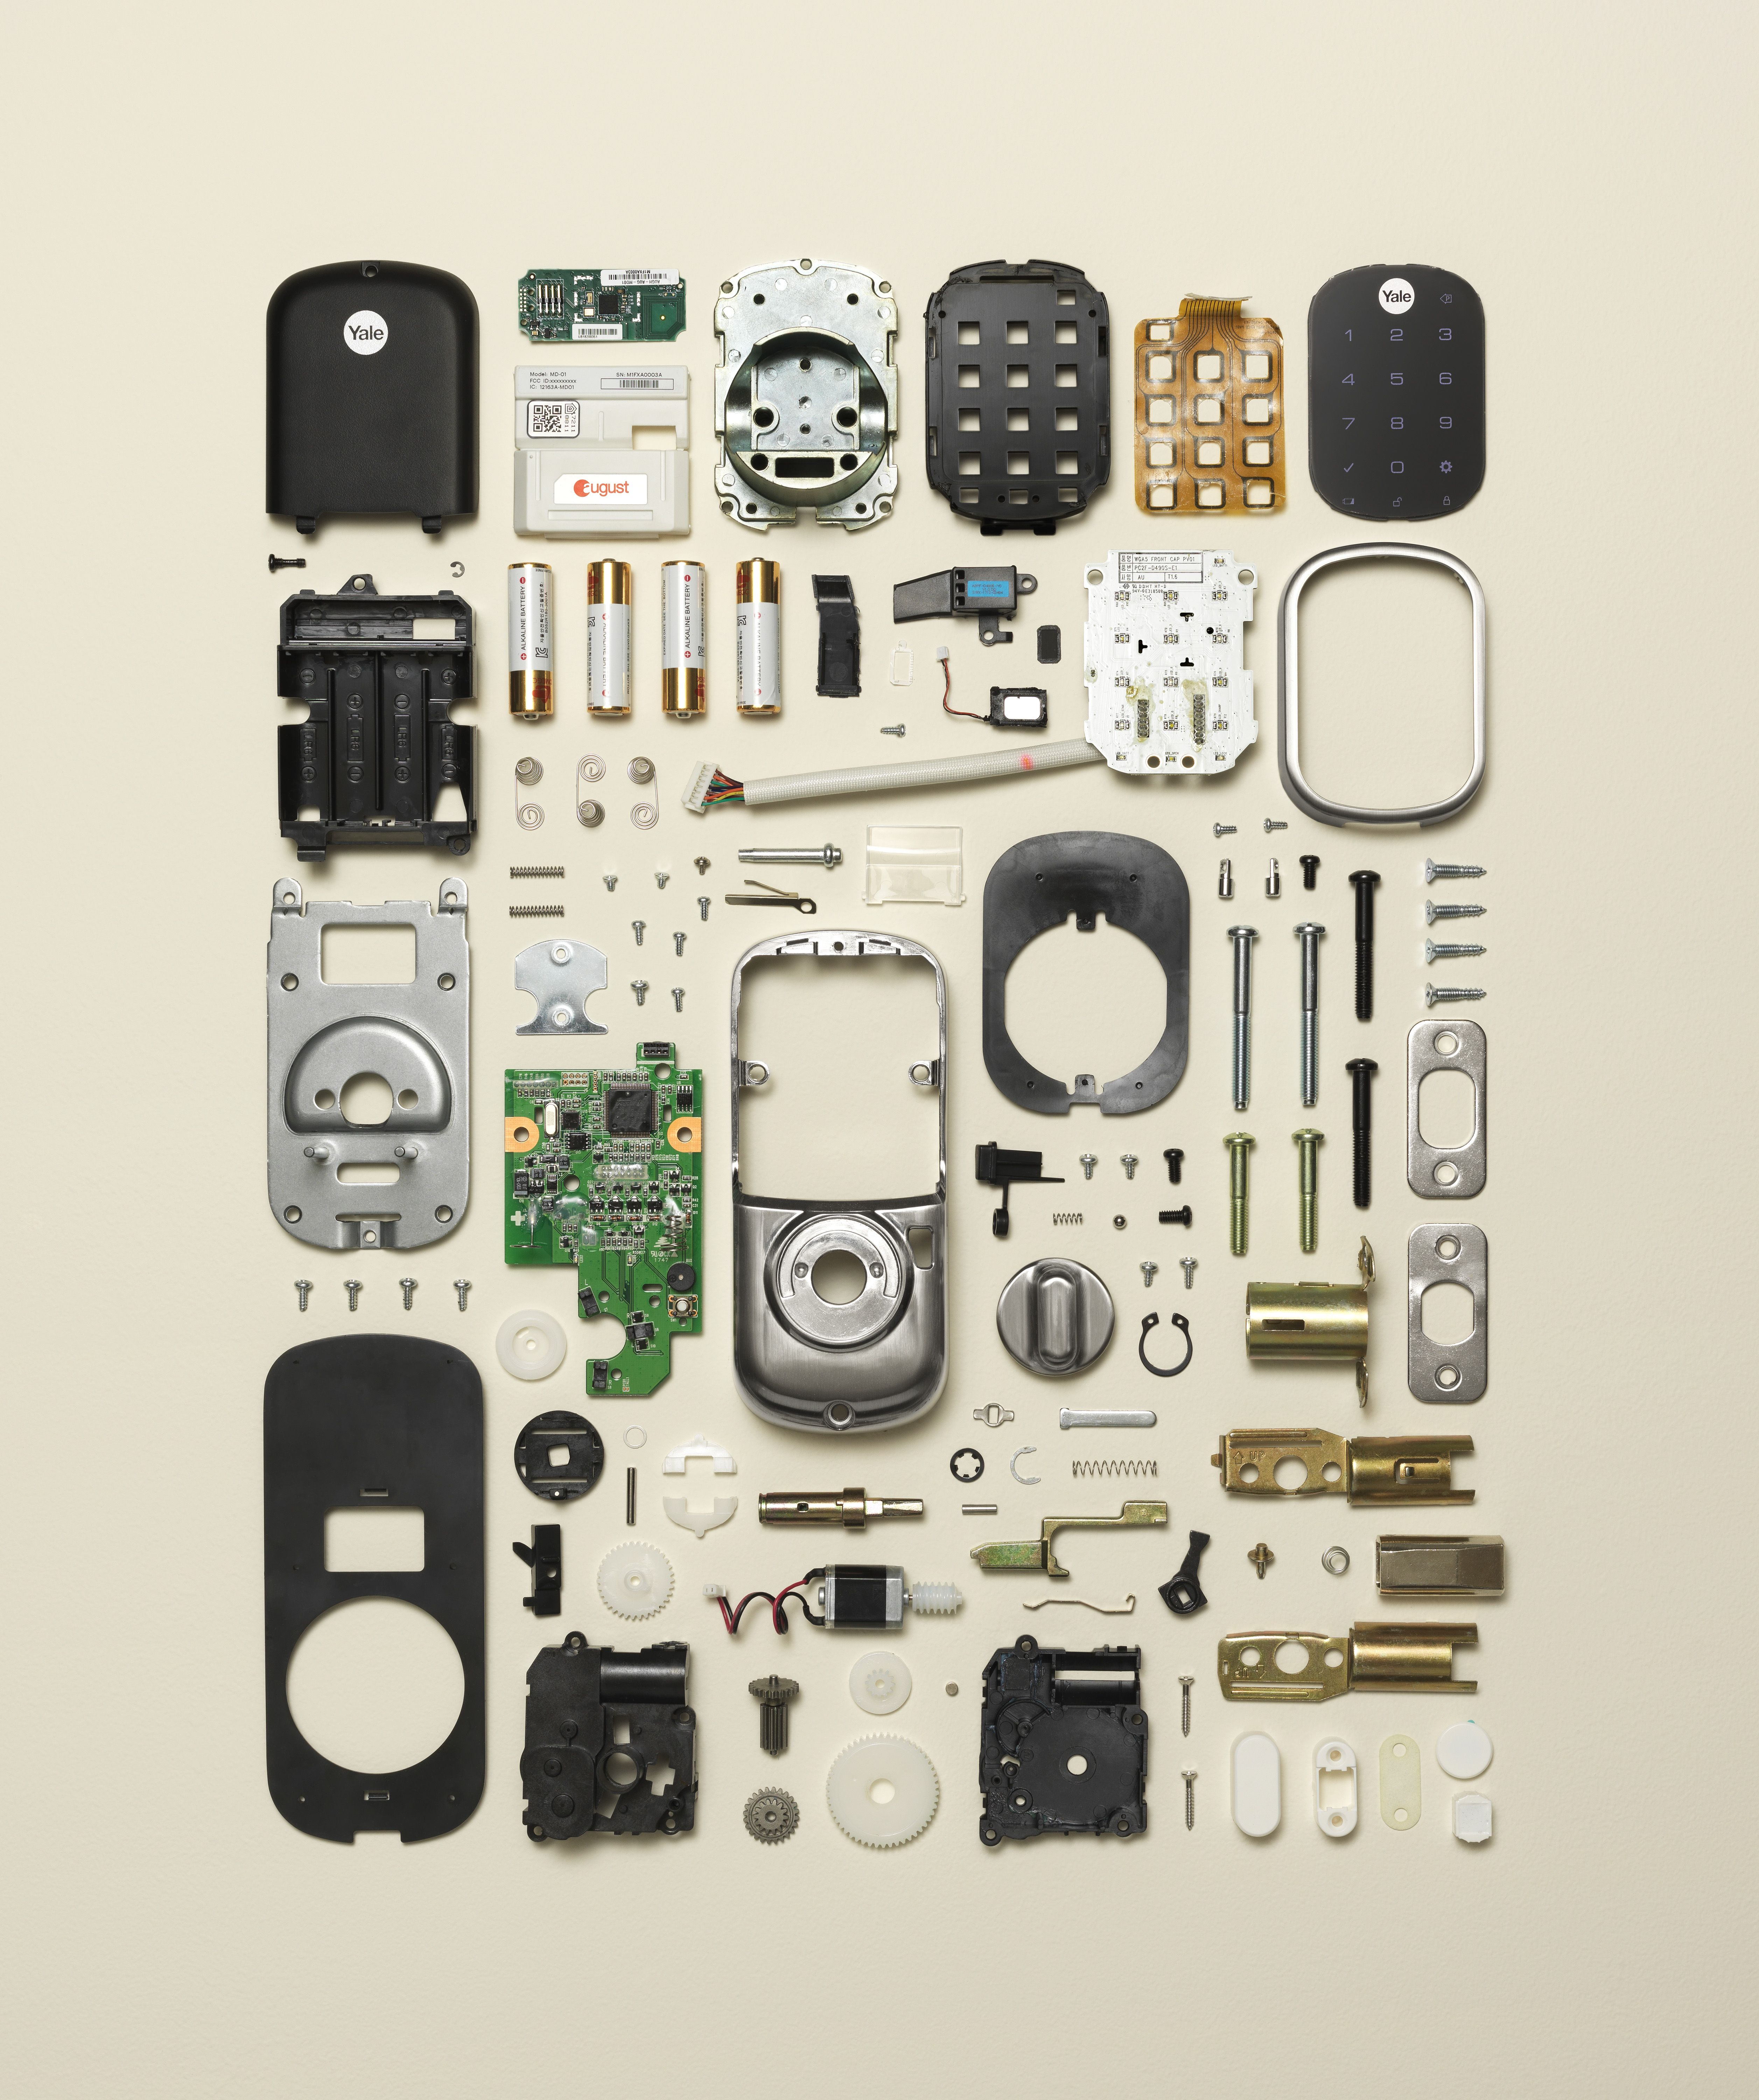 Disassembly of a smart lock